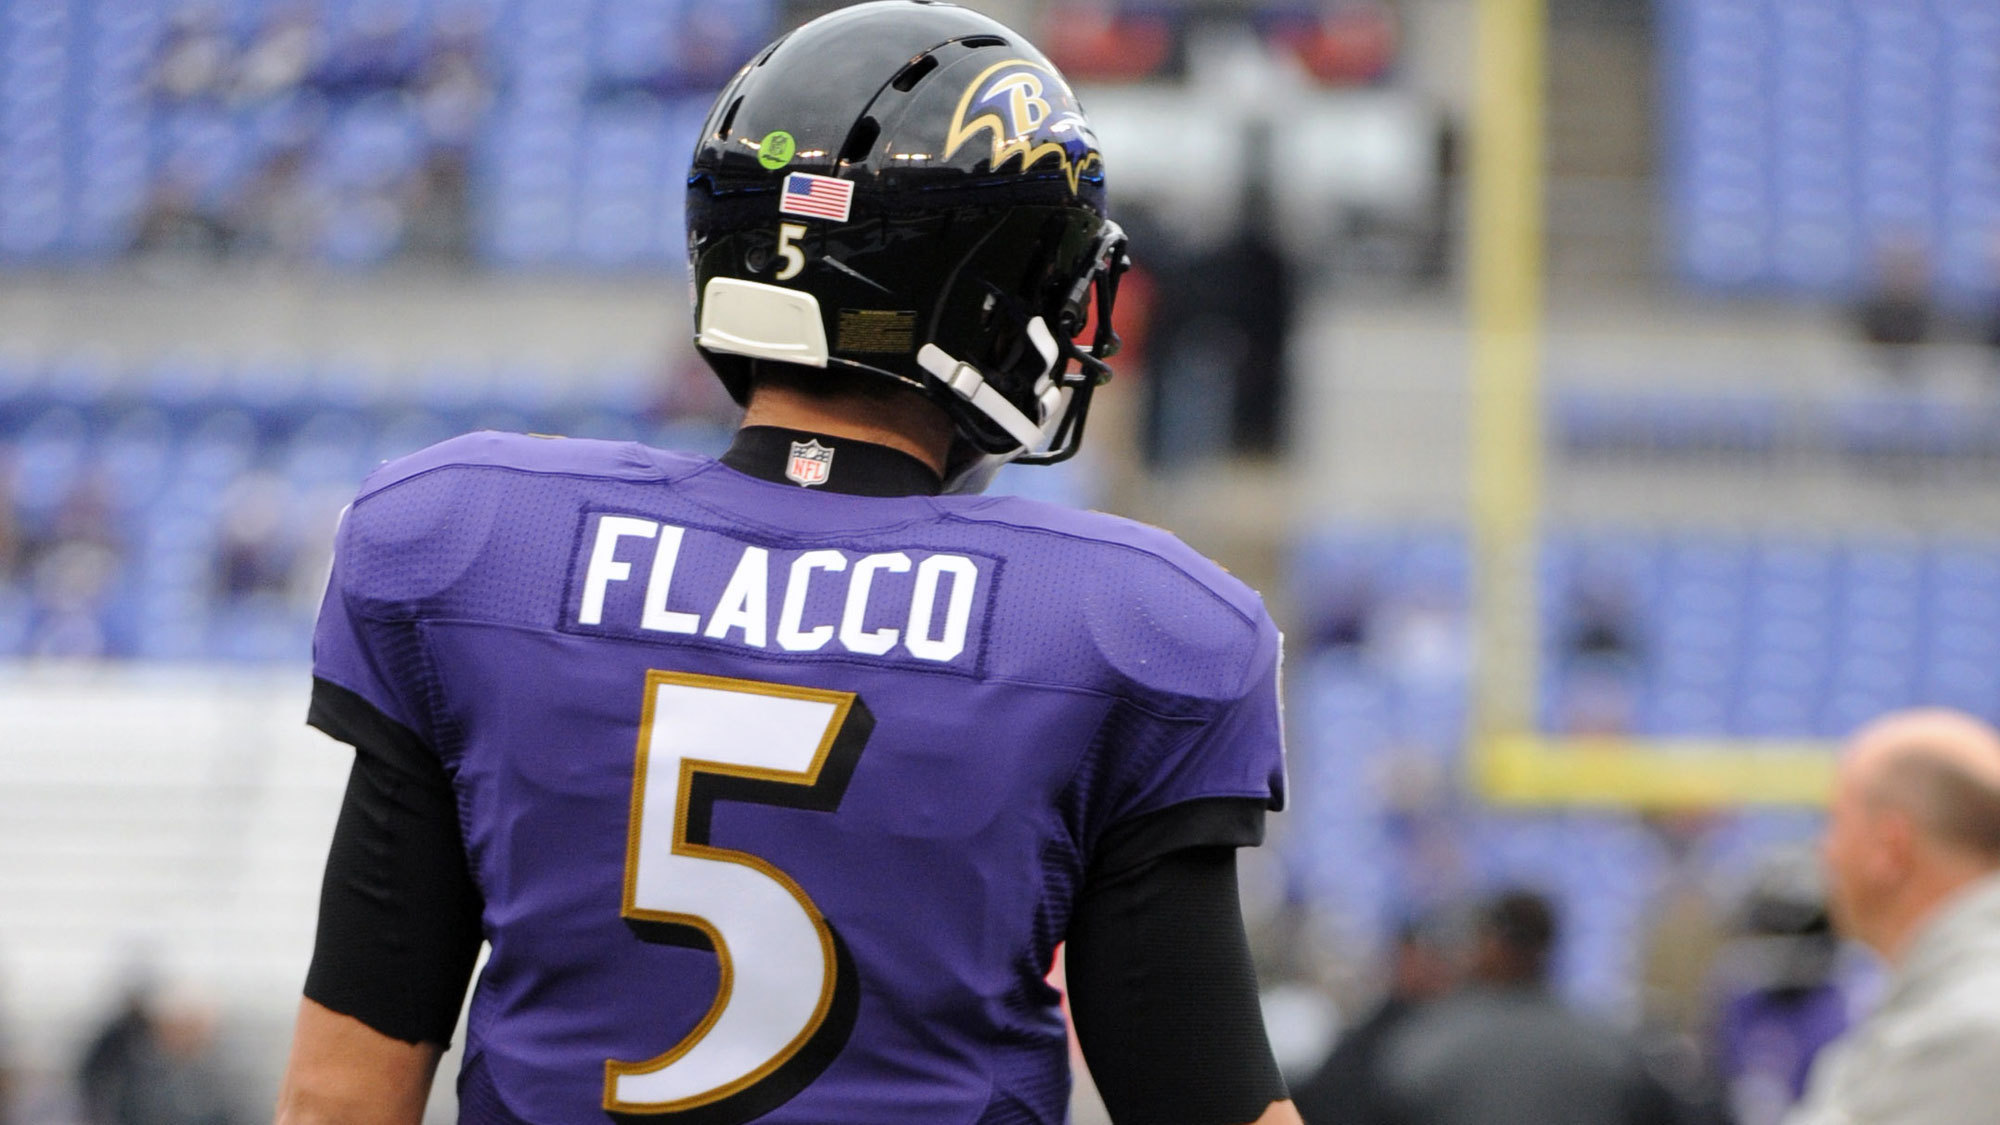 joe flacco football jersey